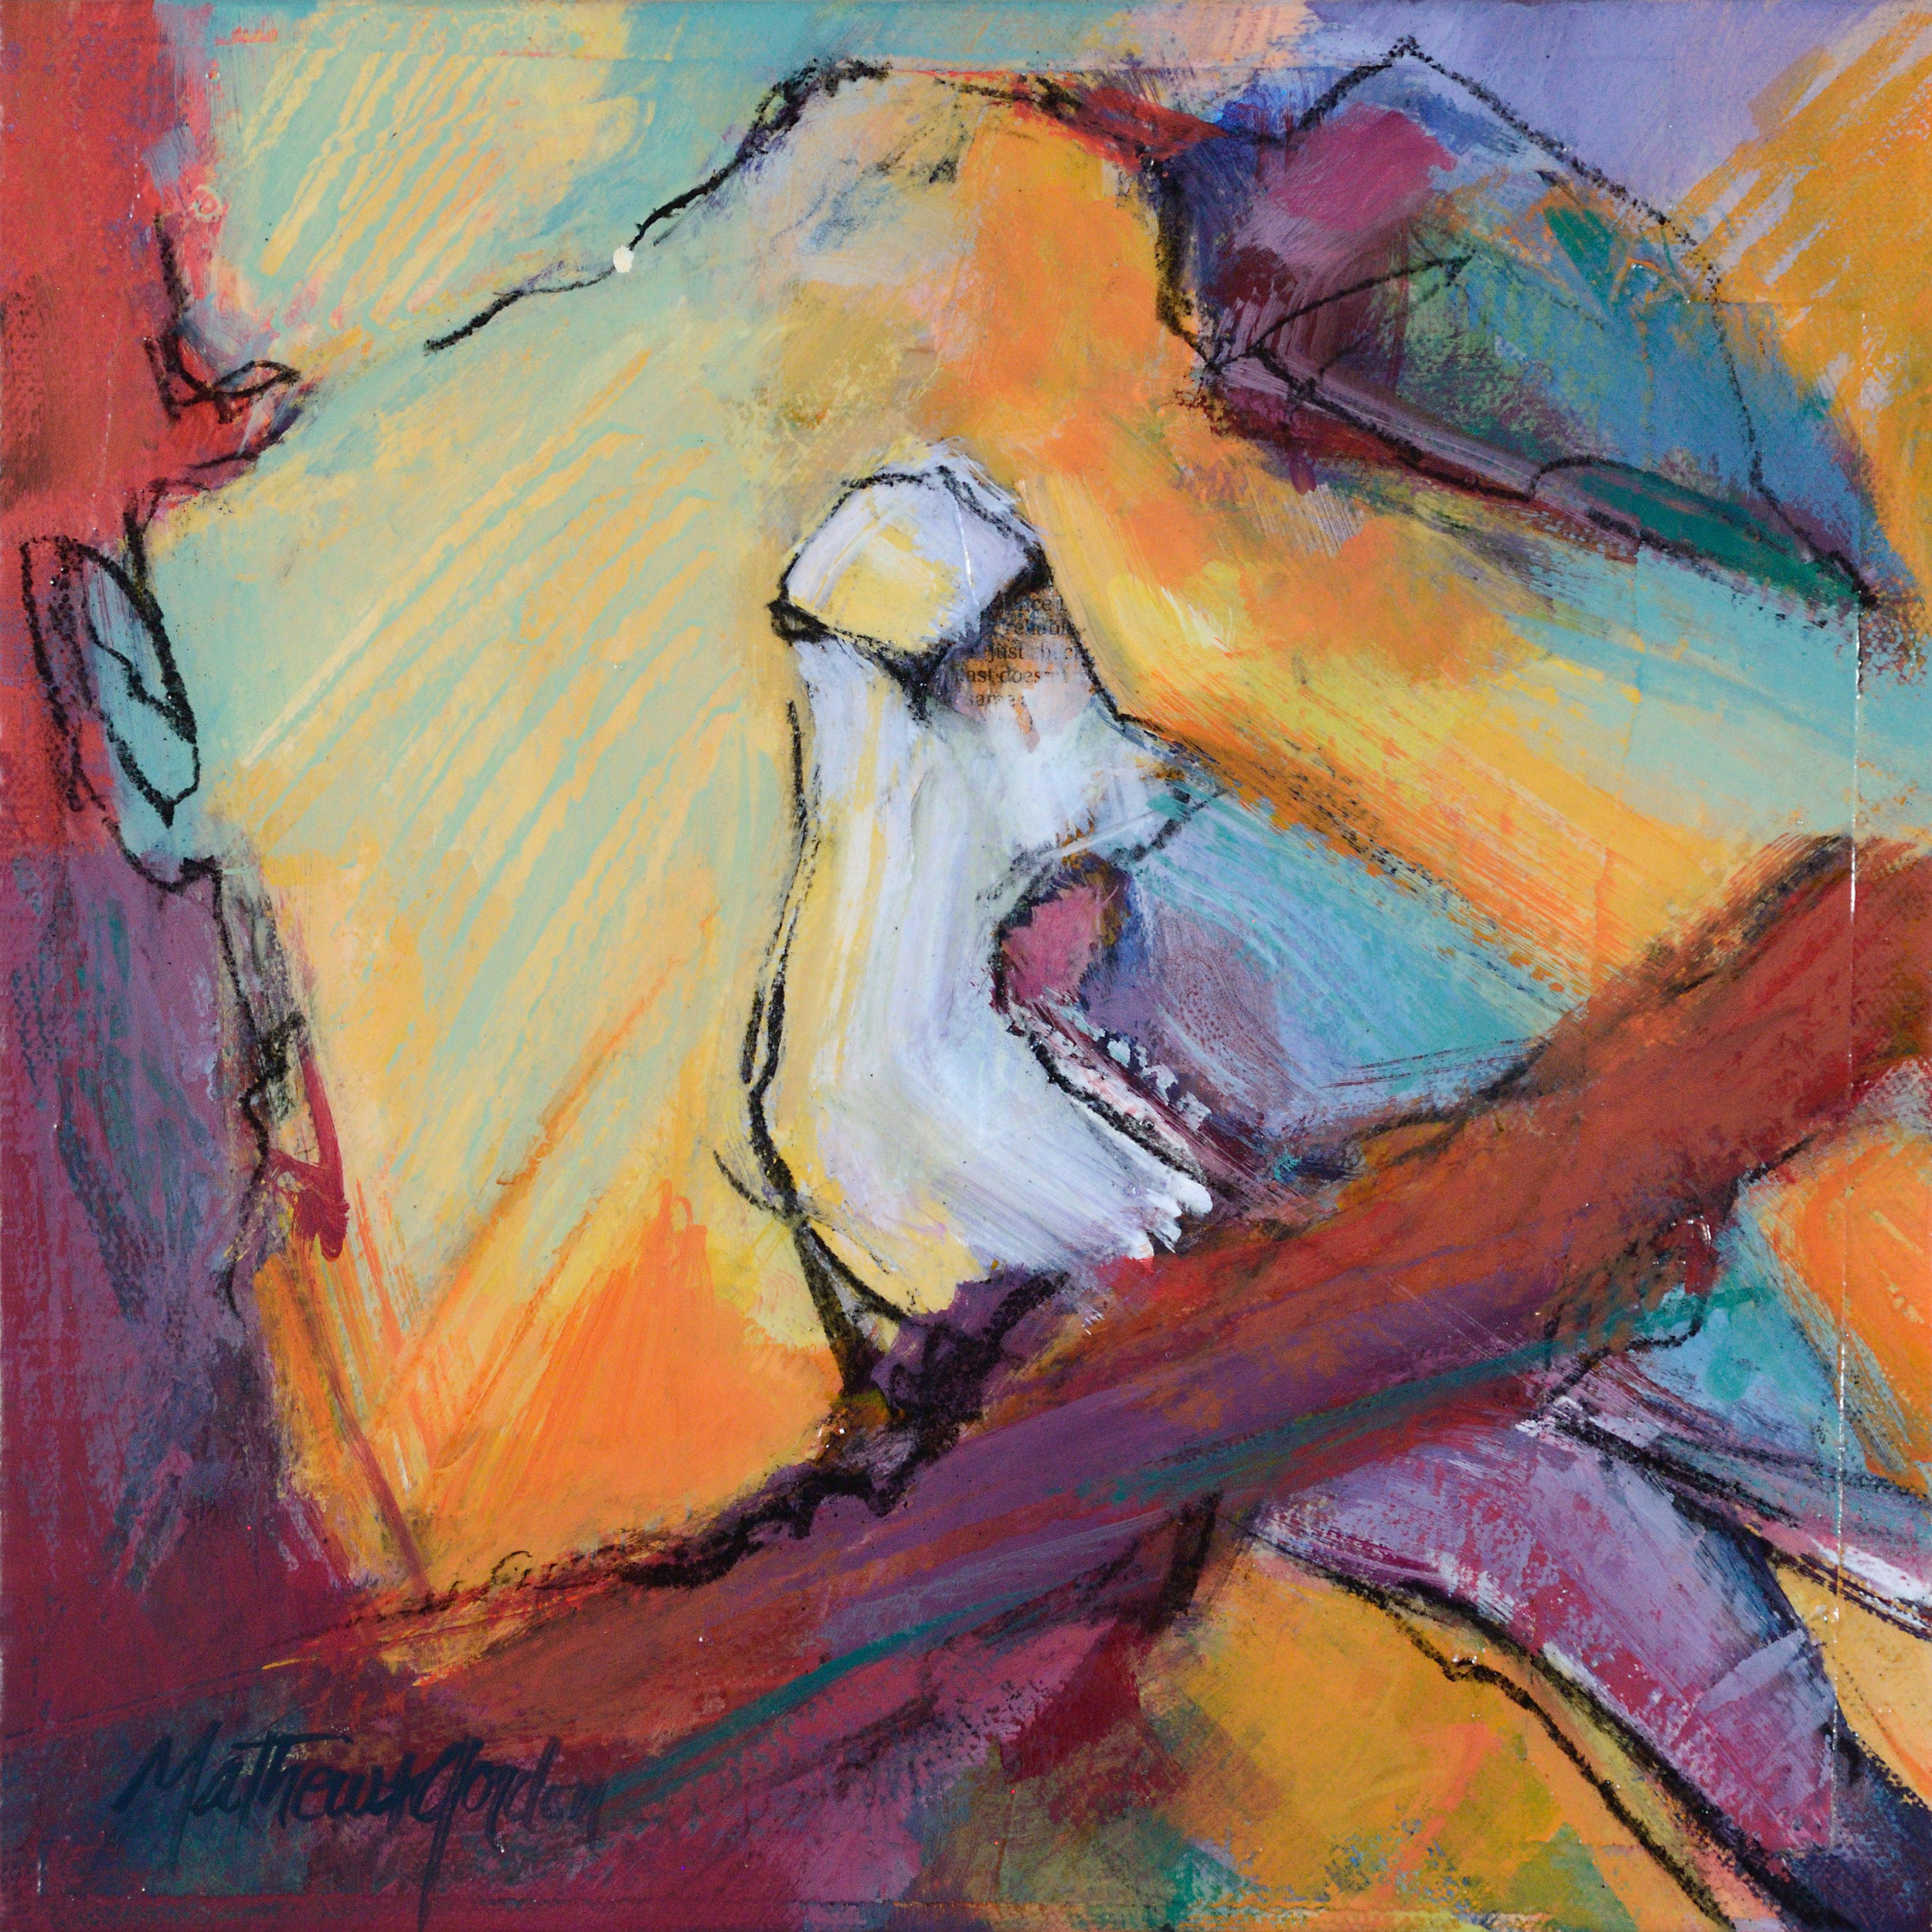 Every fall, I paint a small number of doves in memory of my father. A lawyer and civil rights activist, Dad worked at the grassroots level to advance peaceful solutions to legal and social injustices of the time.